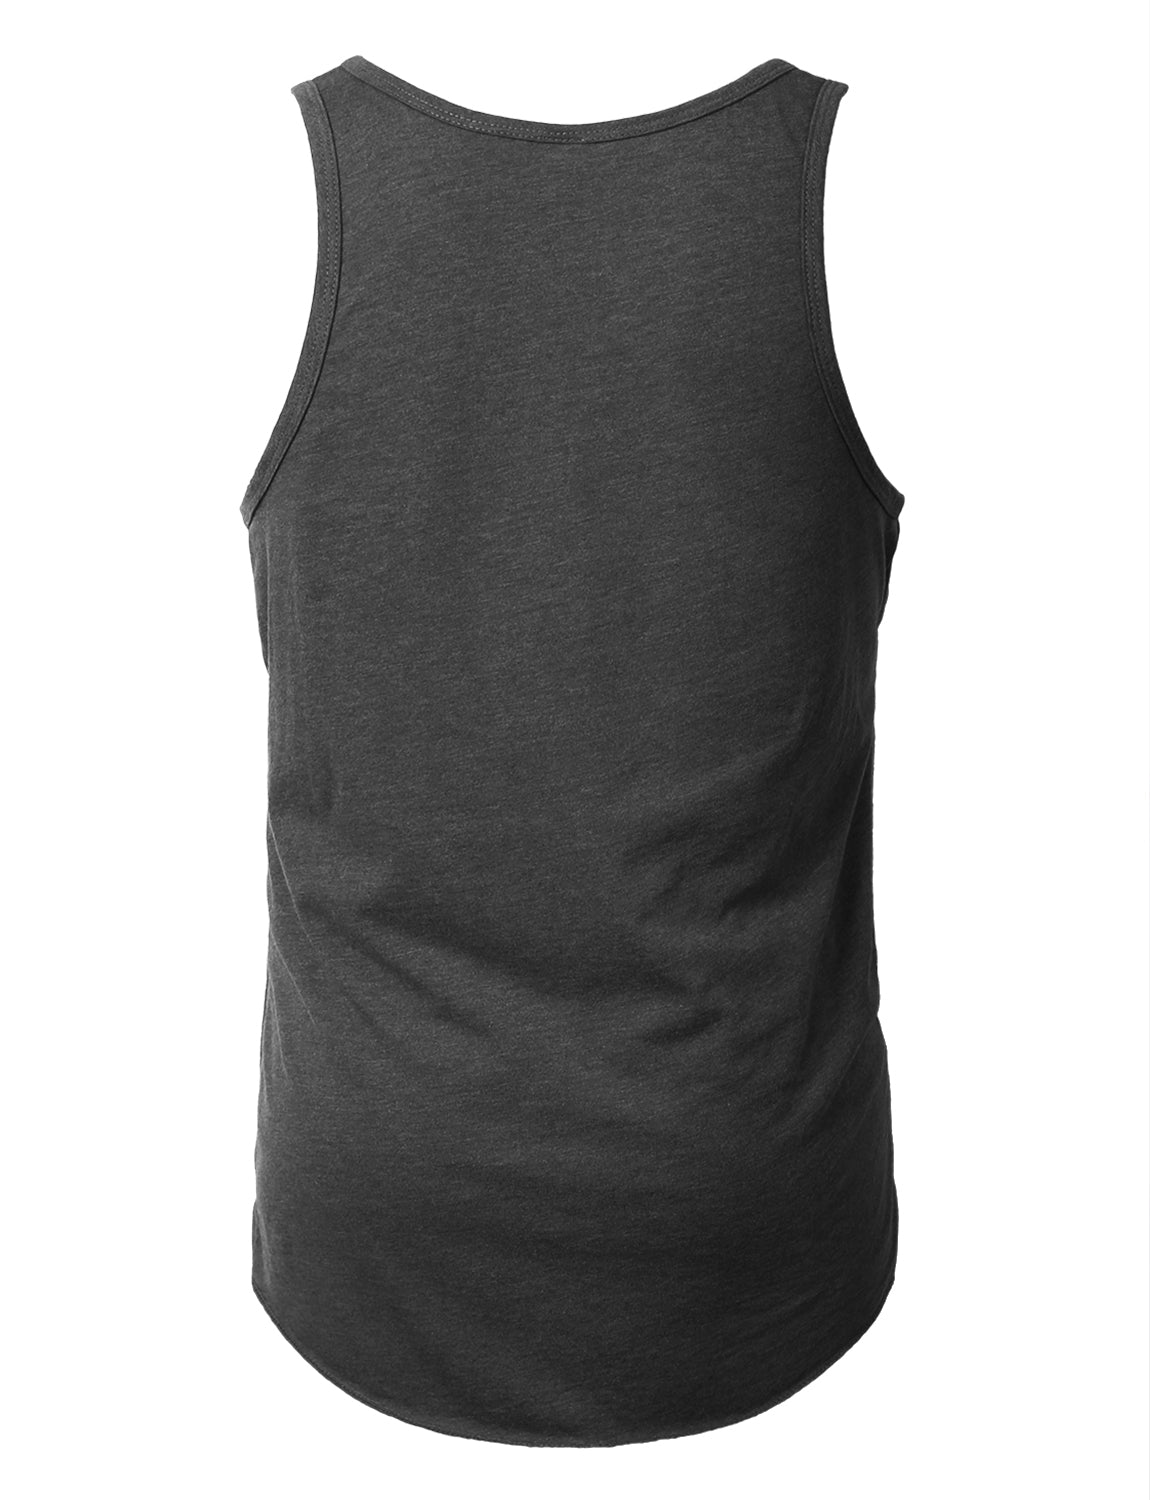 CHARCOAL Basic Solid Muscle Tank Top Shirts - URBANCREWS